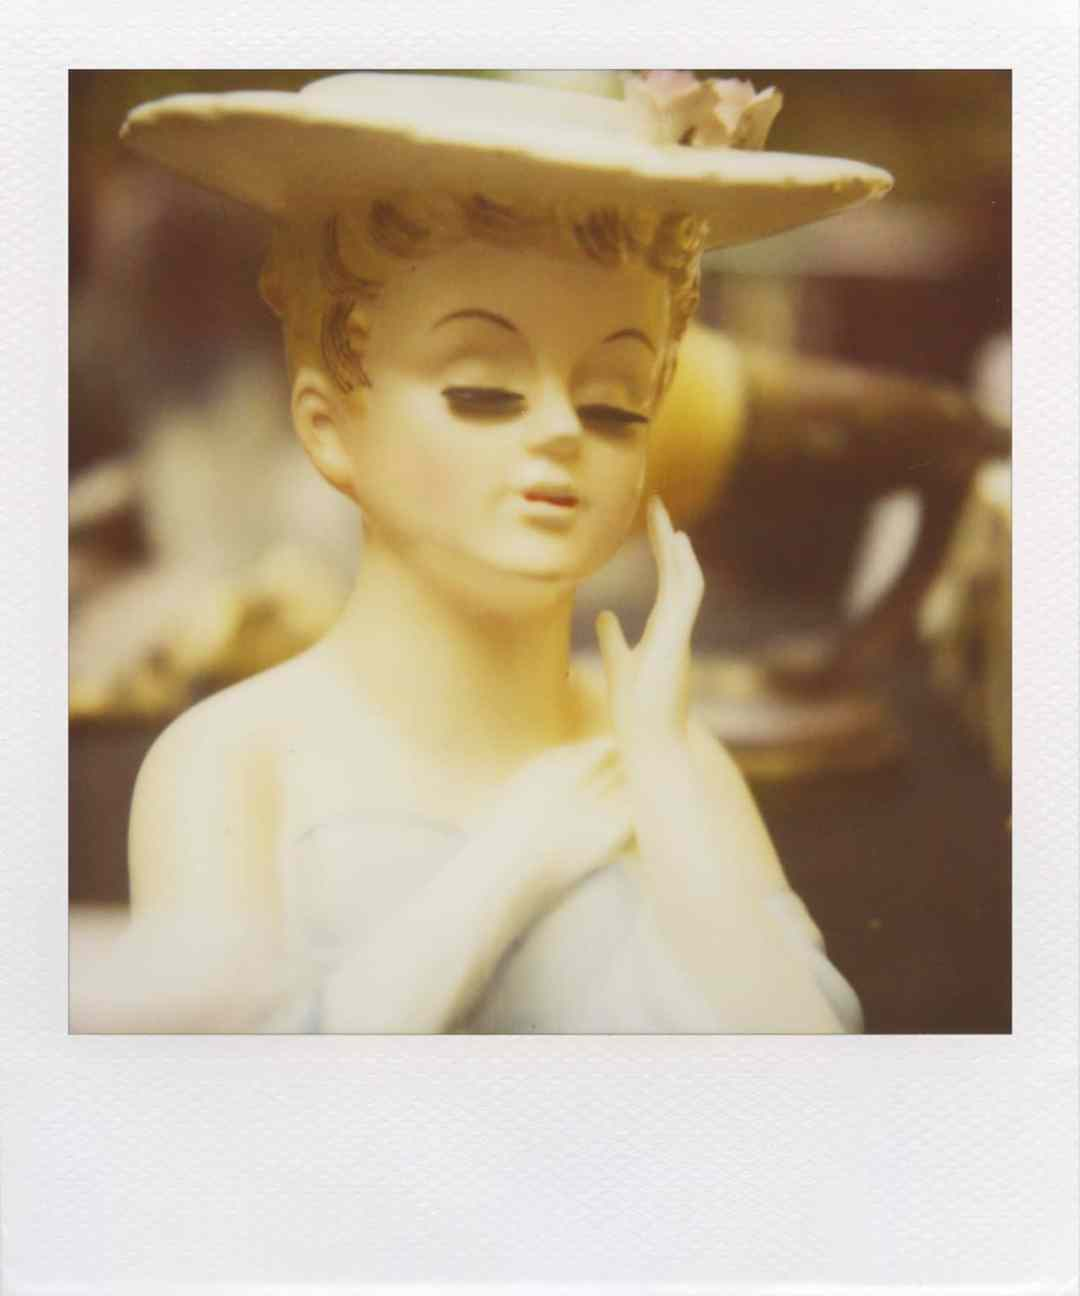 """Susie Flowerpot"" (NYC 2011) - Polaroid SX-70 Alpha 1 Land Camera with expired Polaroid 600 film and ND pack filter"